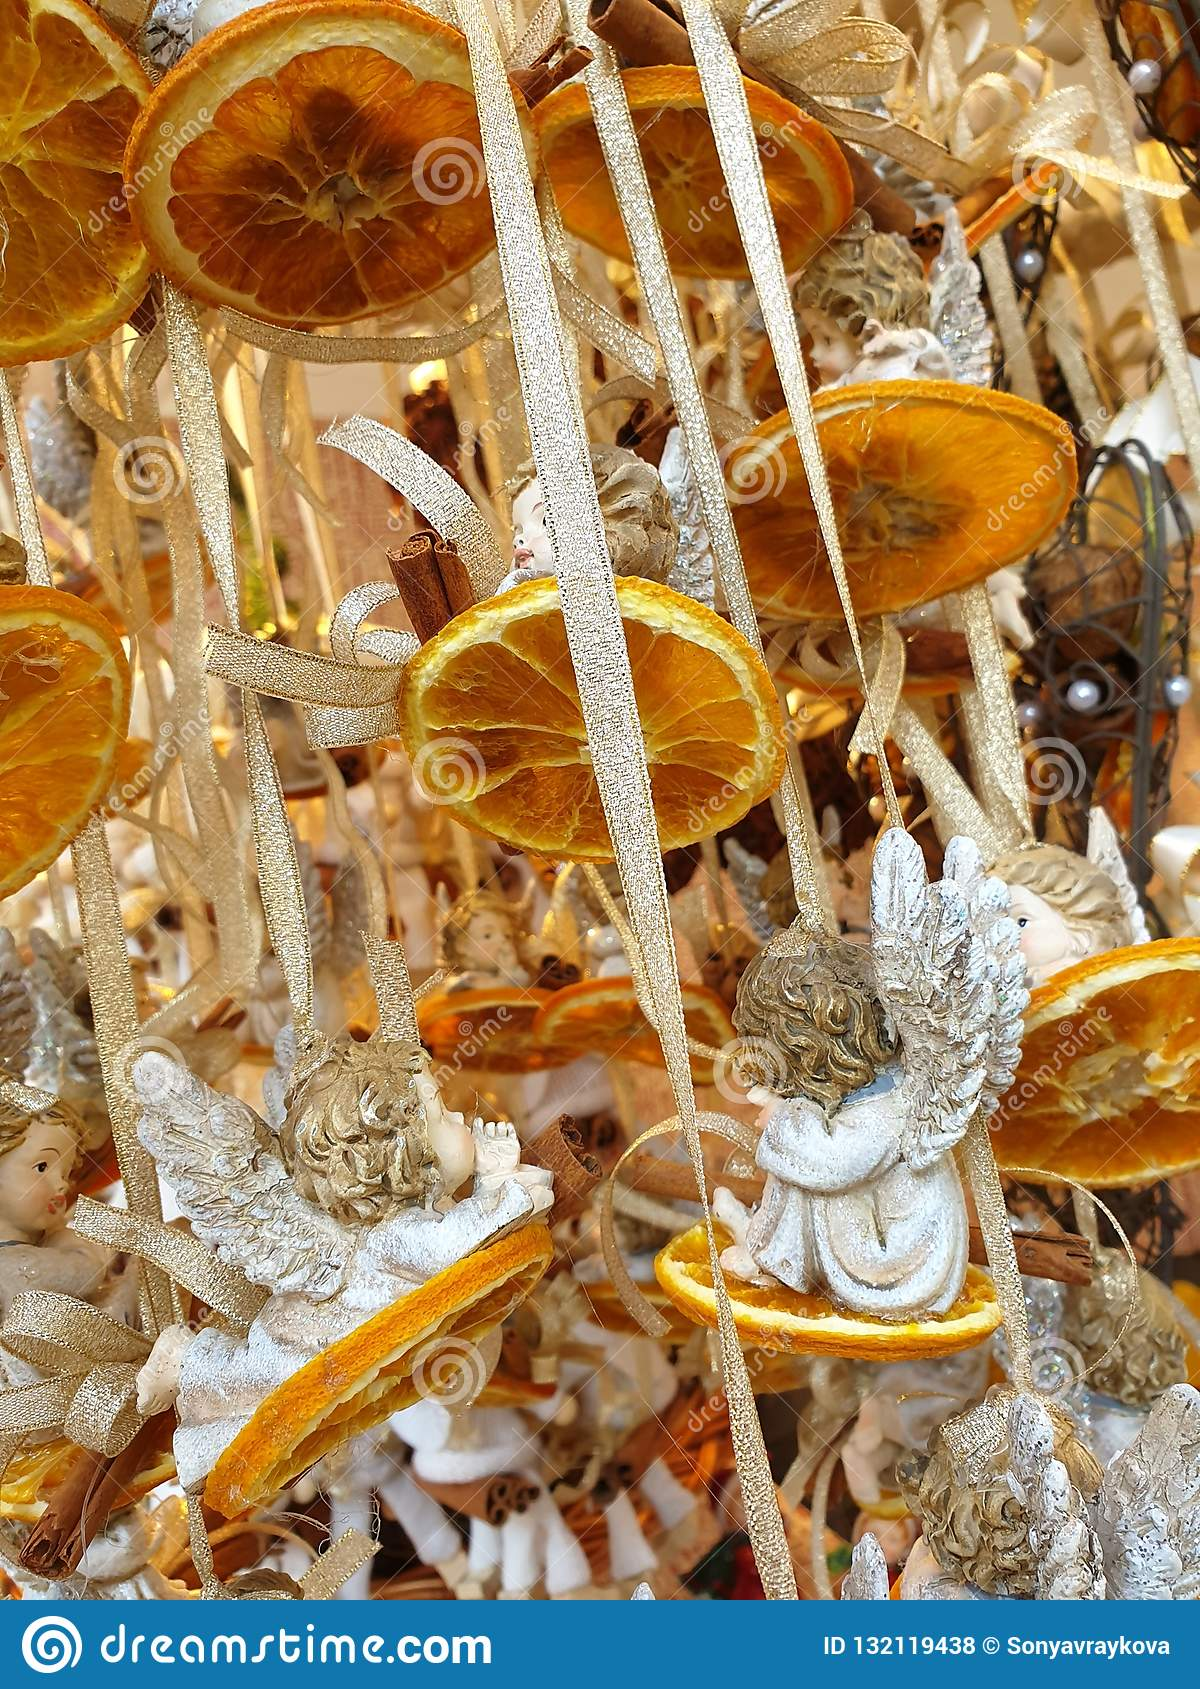 Christmas Decoration Of Dried Oranges And Ceramic Angels Stock Photo